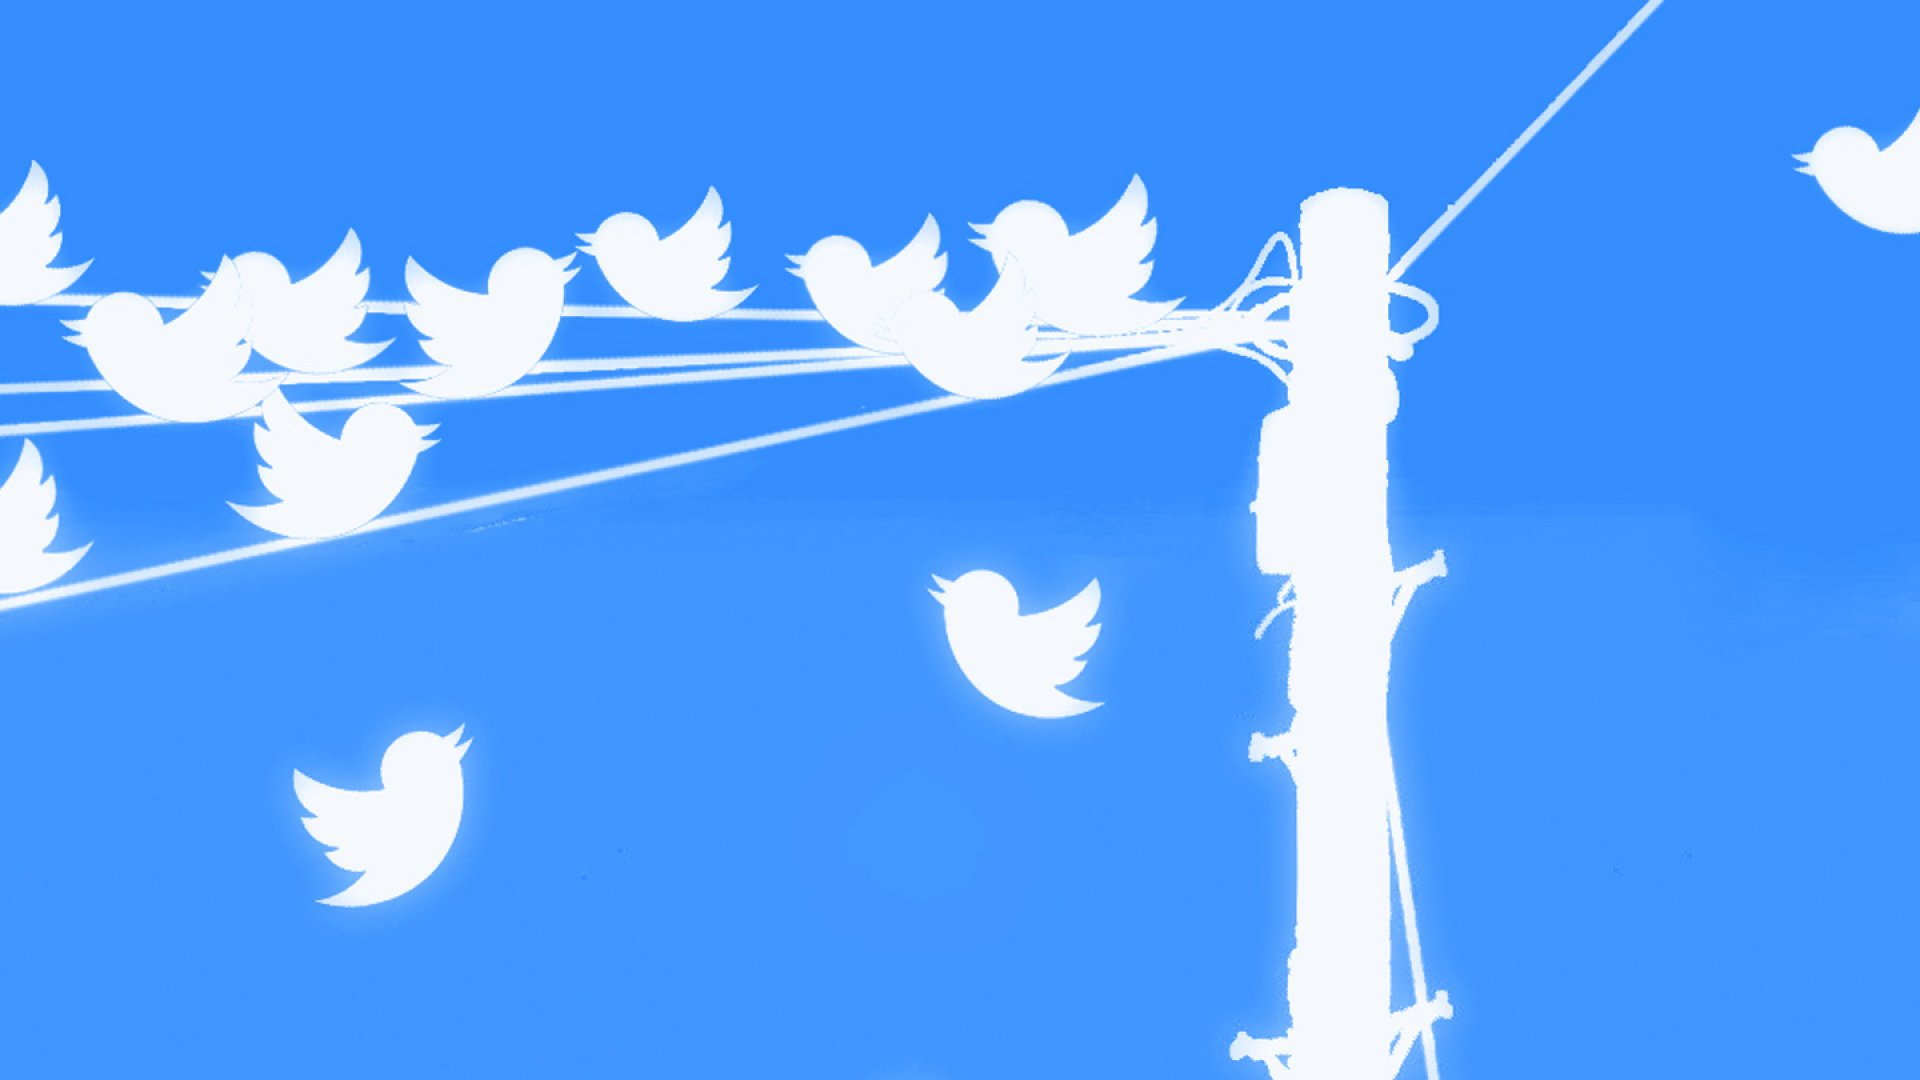 Dump the Ego and Be Positive: How to Get More Twitter Followers